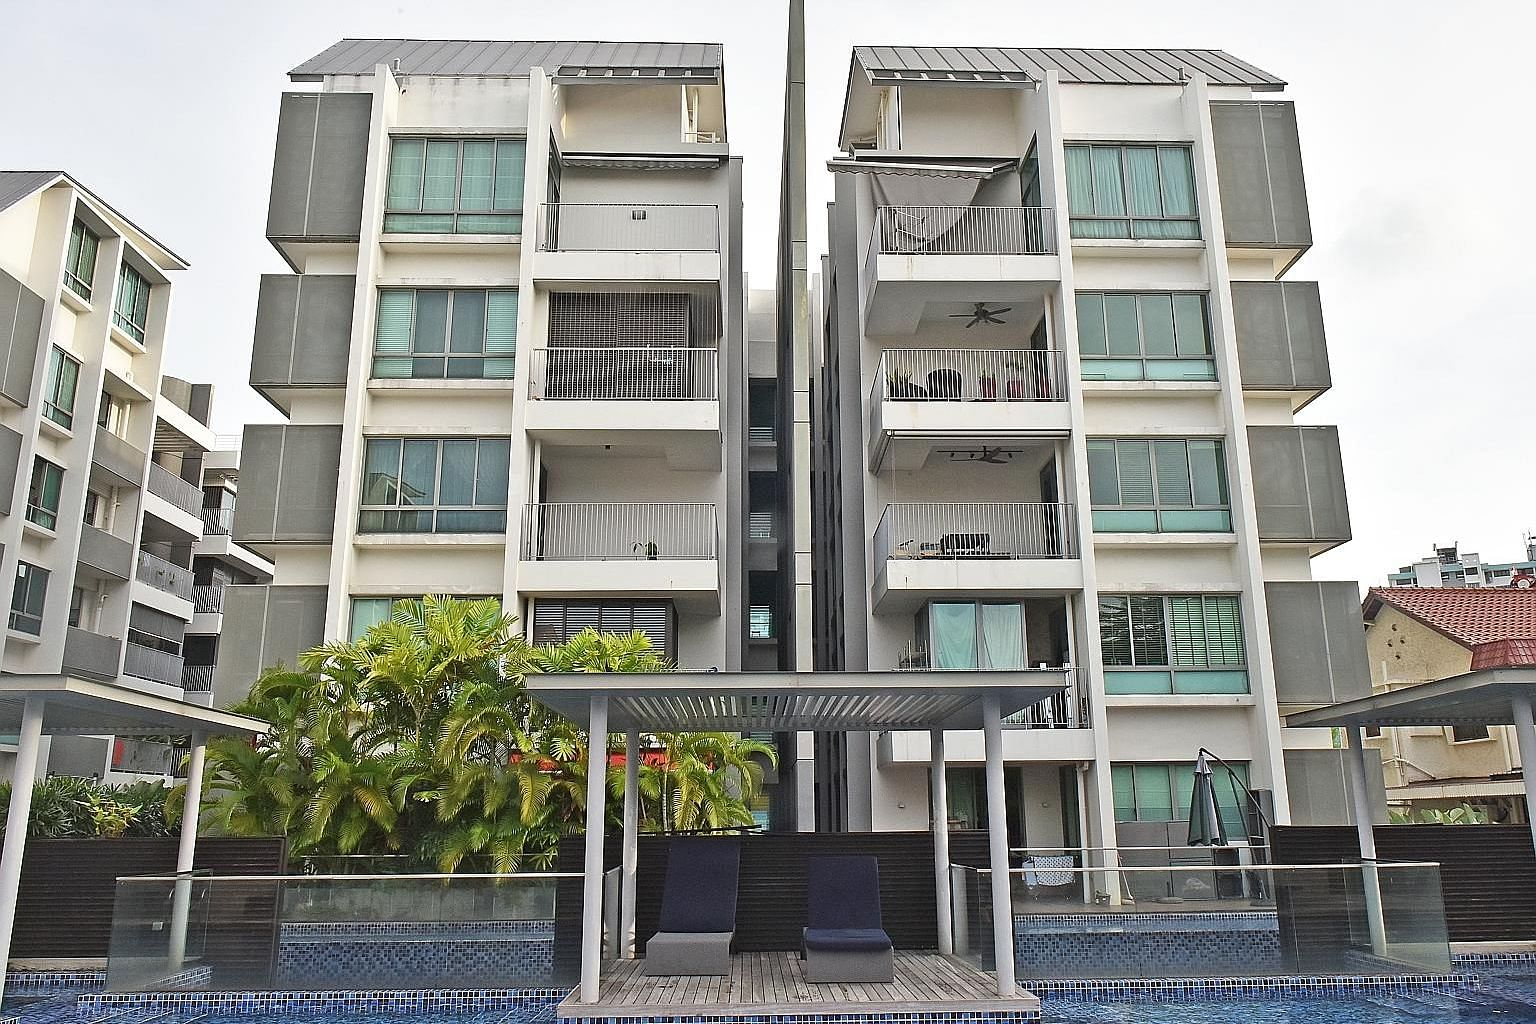 Mr Sebastian Tan bought his current freehold 1,518 sq ft apartment in St. Patrick's Road in 2015, a year after the property got its TOP, for $2.05 million. It is valued at $2.5 million or about $1,650 psf.